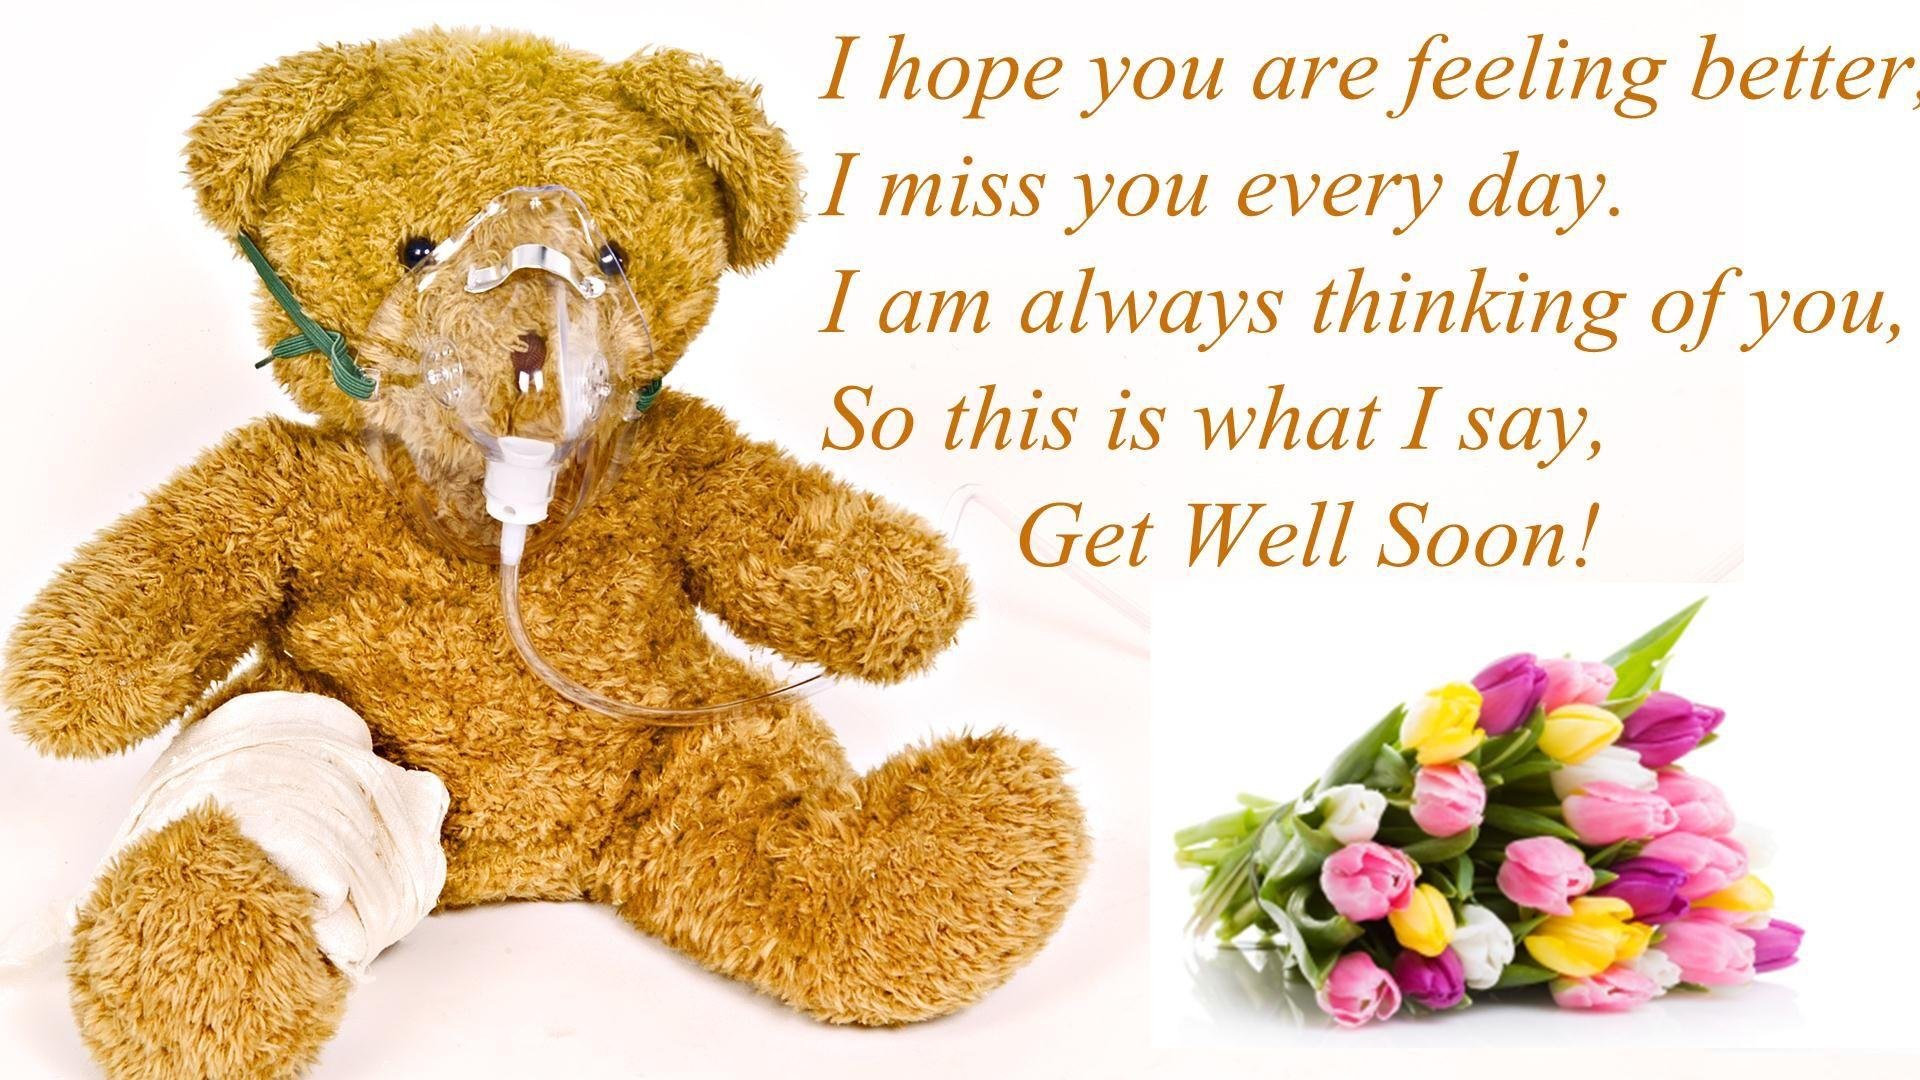 {Best} get well soon wishes messages and quotes